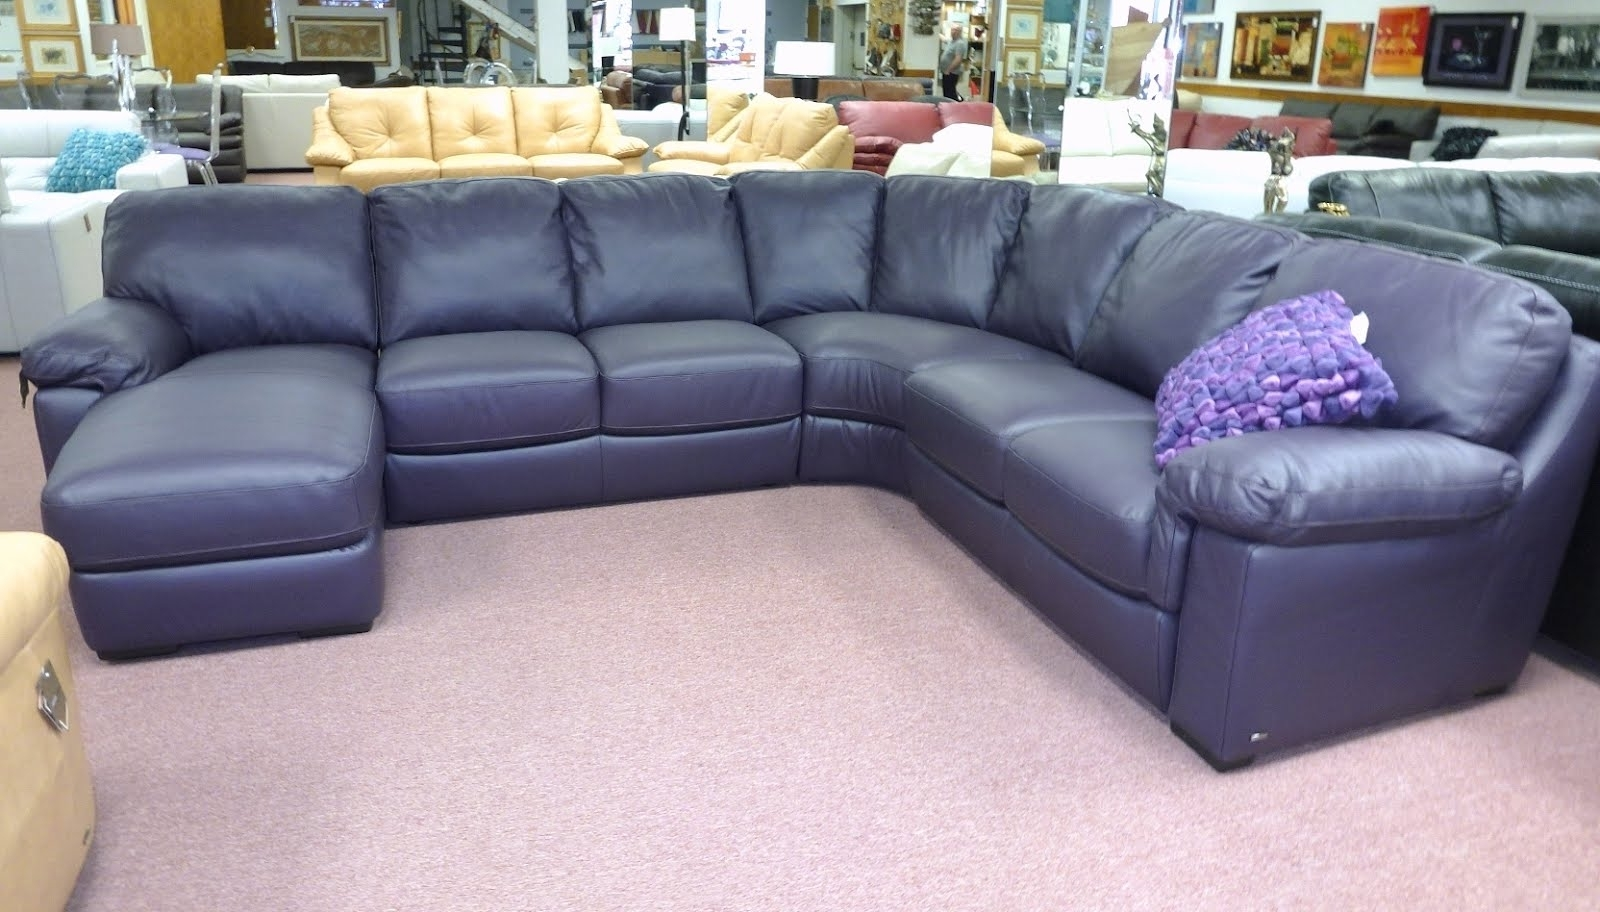 Famous Jcpenney Sectional Sofas Regarding Best Navy Blue Leather Sectional Sofa 64 With Additional Jcpenney (View 3 of 15)